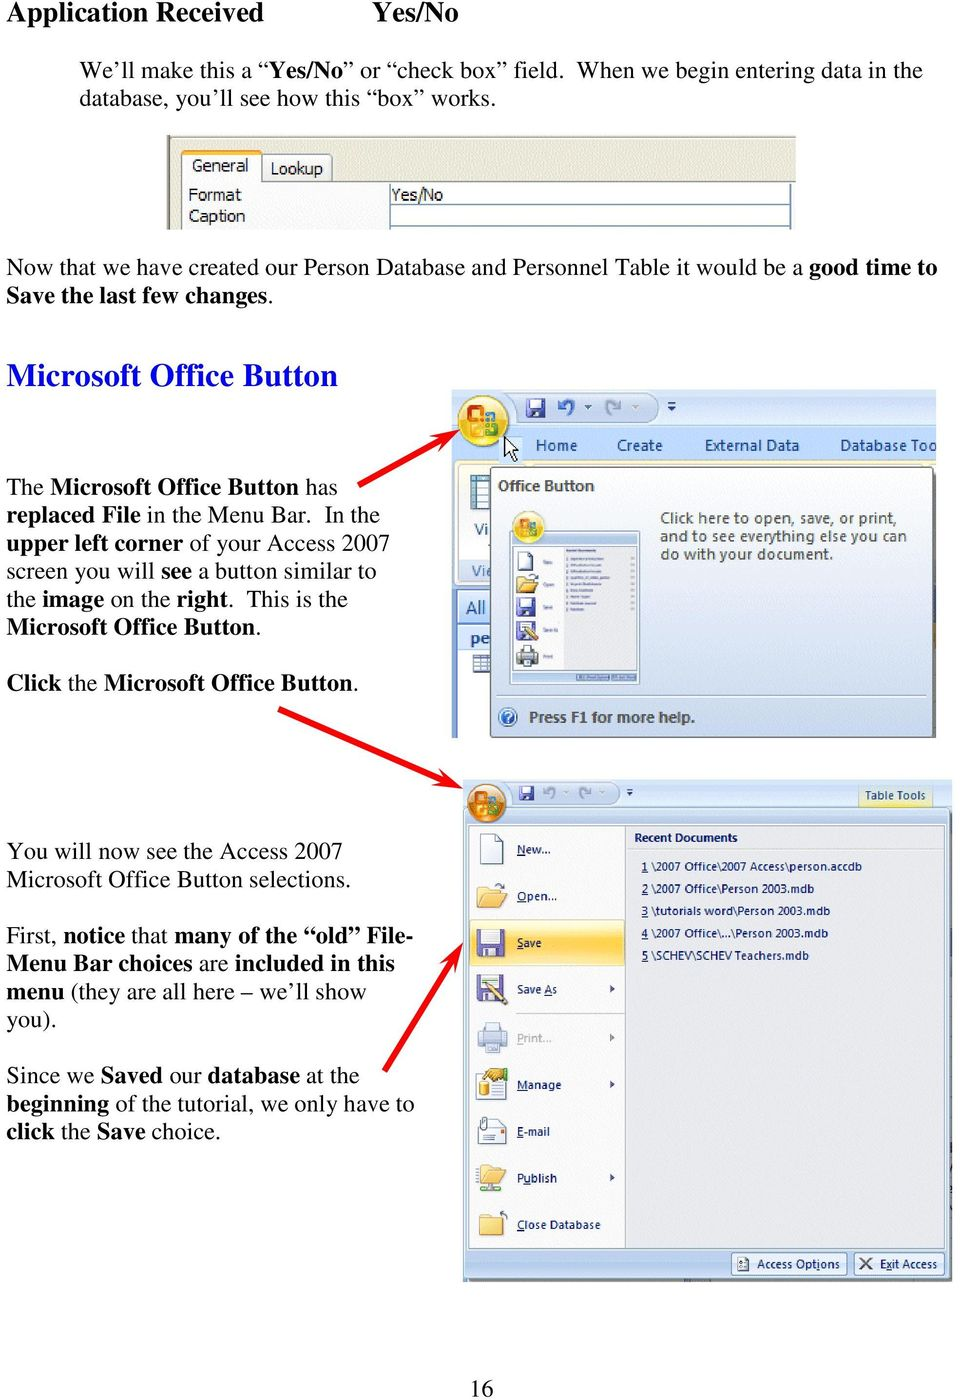 Microsoft Office Button The Microsoft Office Button has replaced File in the Menu Bar. In the upper left corner of your Access 2007 screen you will see a button similar to the image on the right.